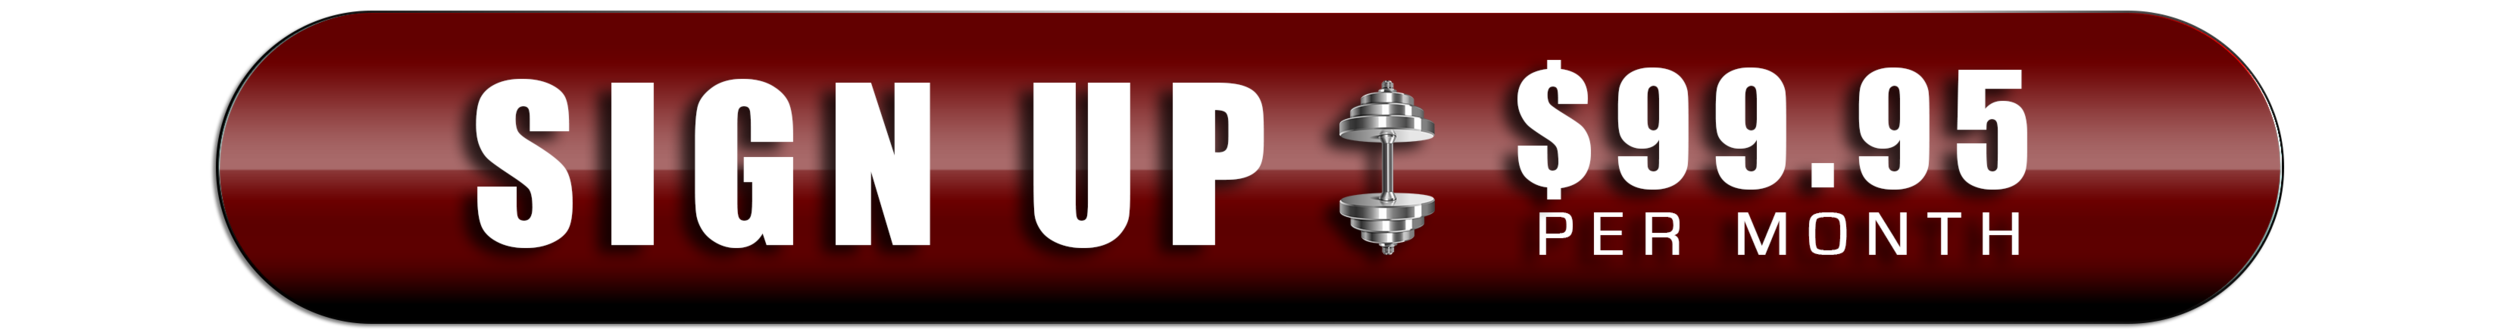 Sign Up Button - Training Redefined (99.95 - Red).png